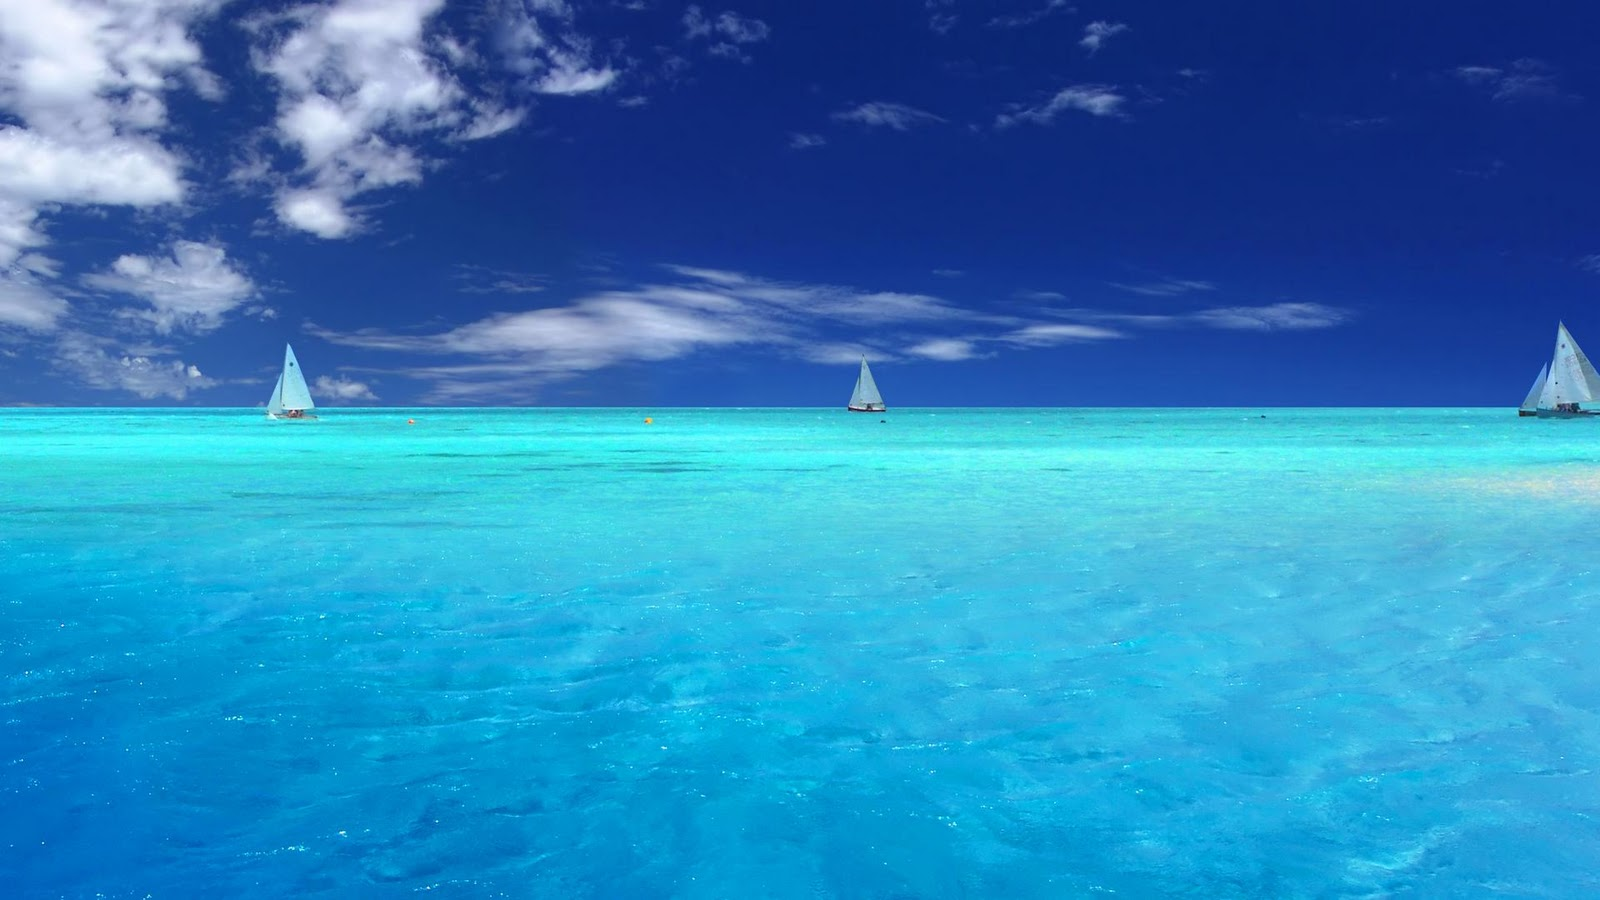 Best Desktop HD Wallpaper   Ocean Wallpapers 1600x900